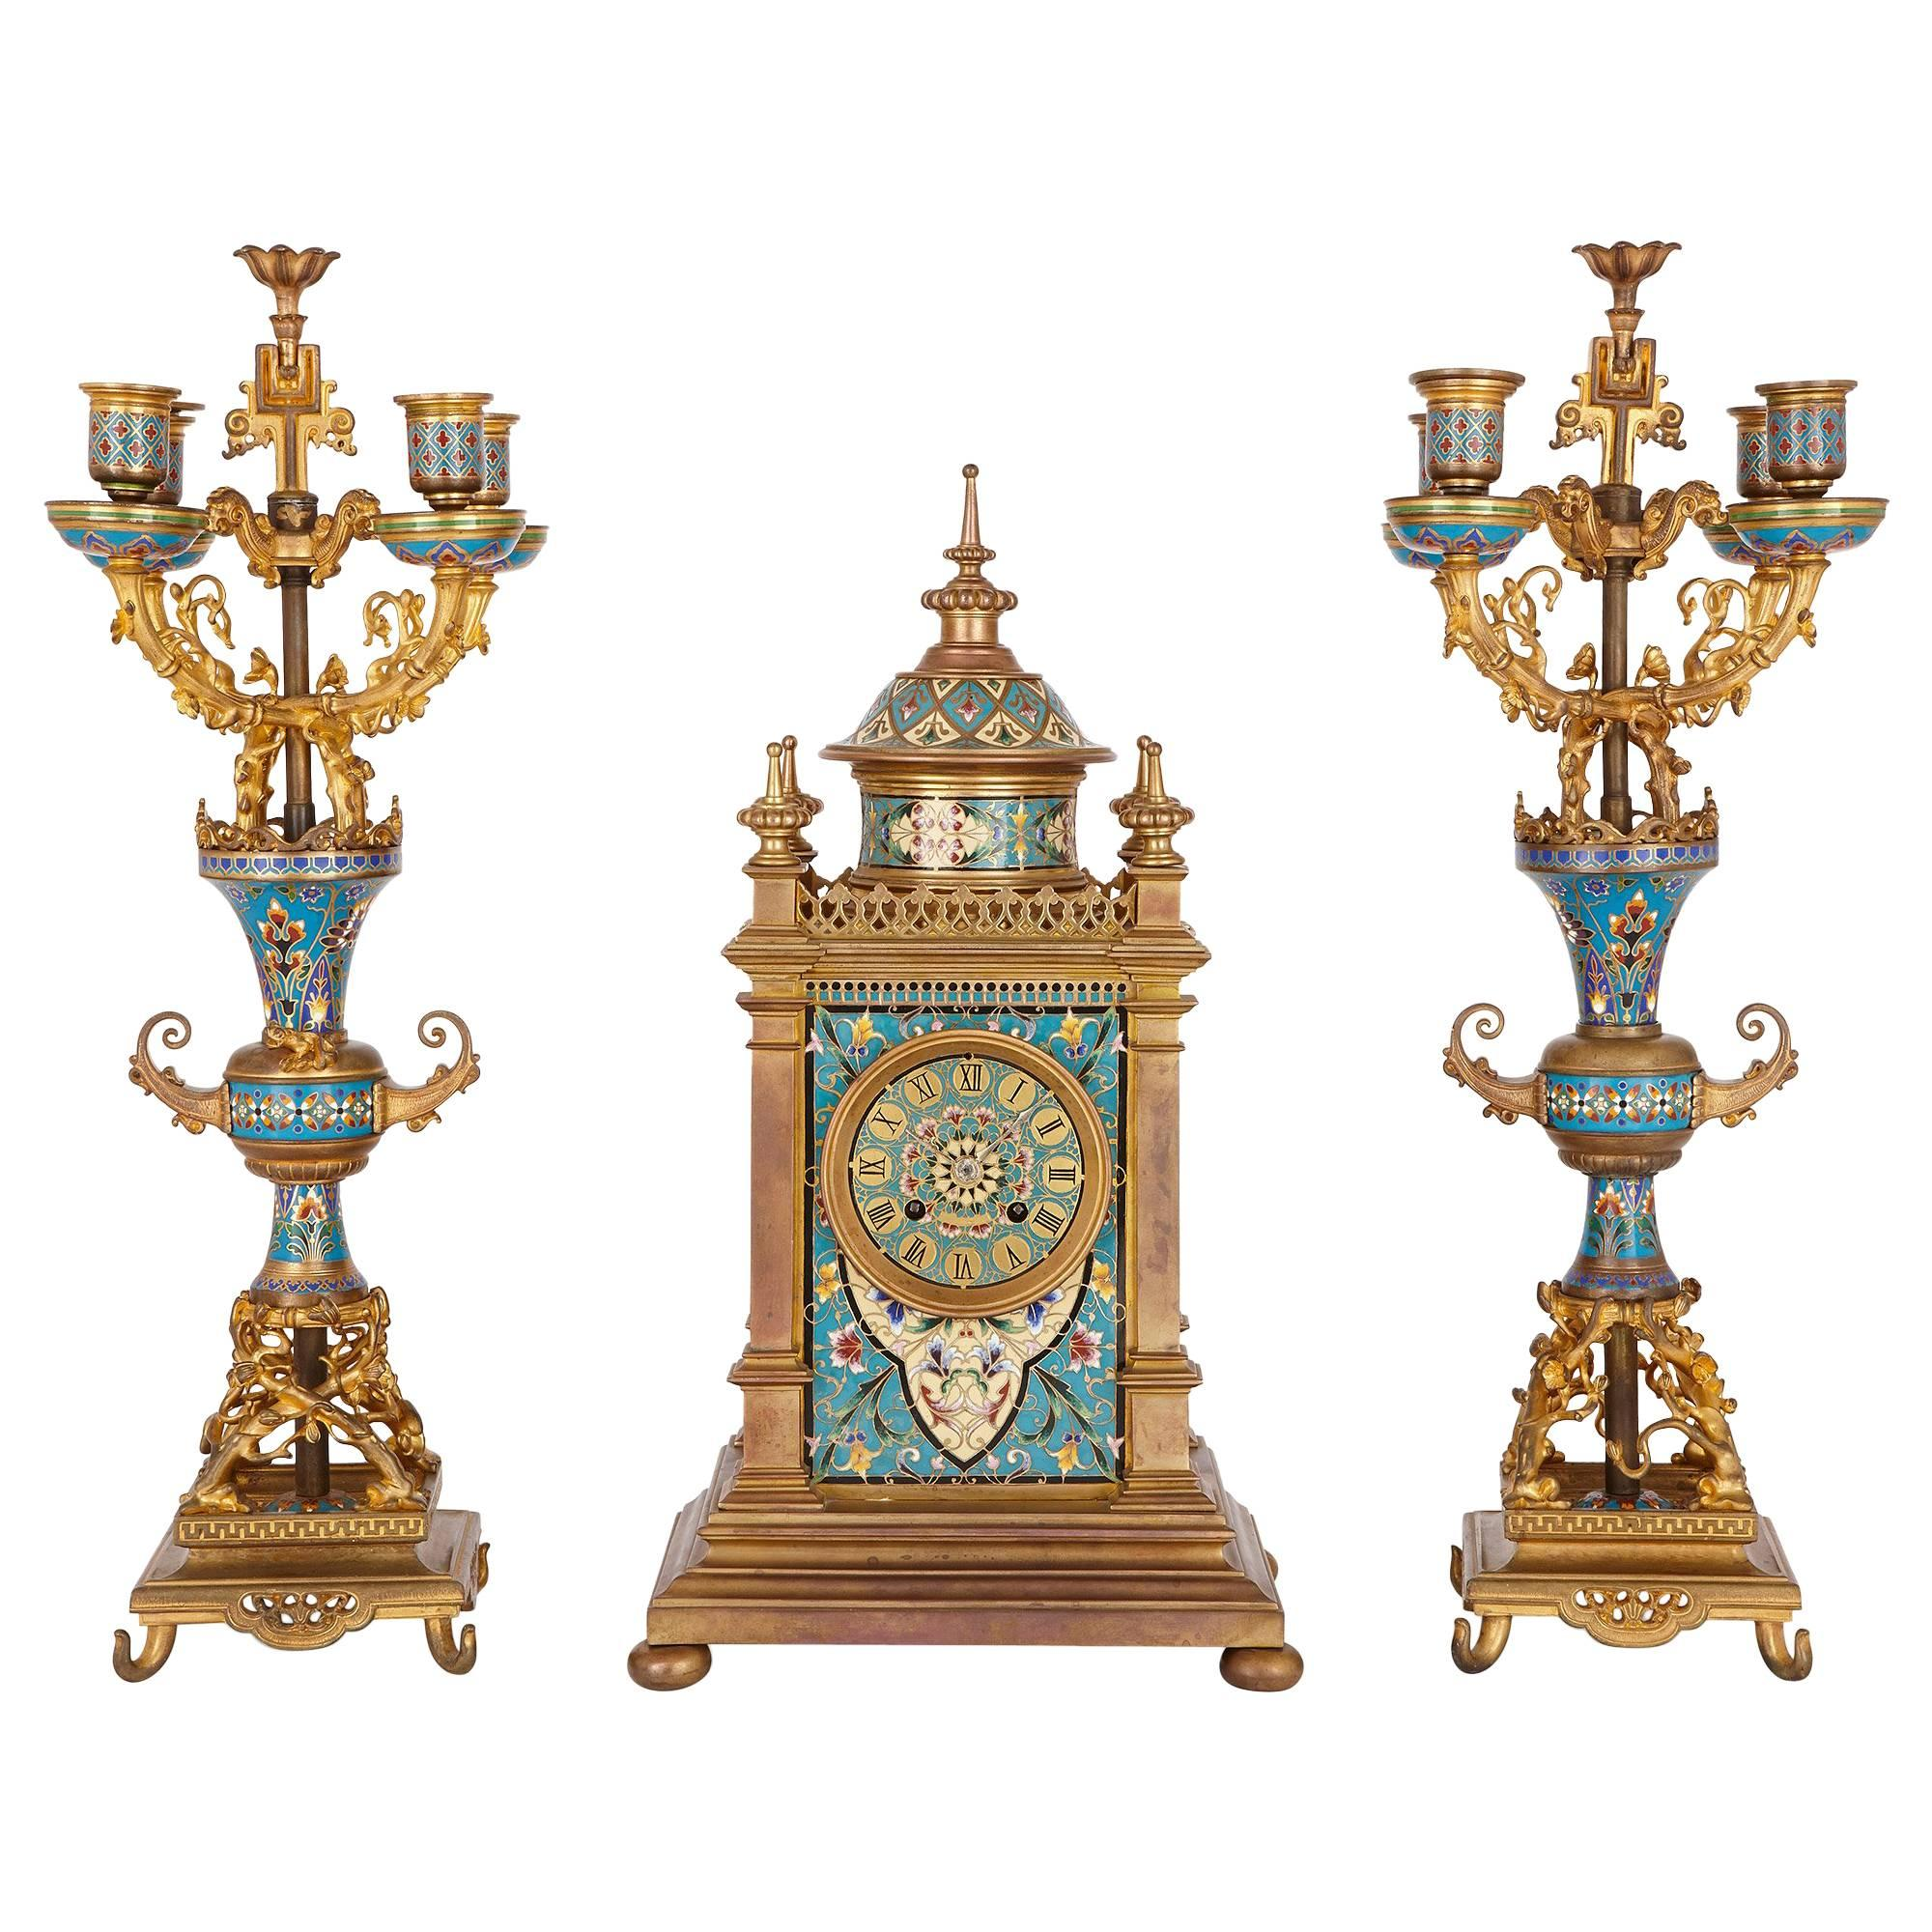 Antique French Clock Set in Champleve Enamel and Ormolu